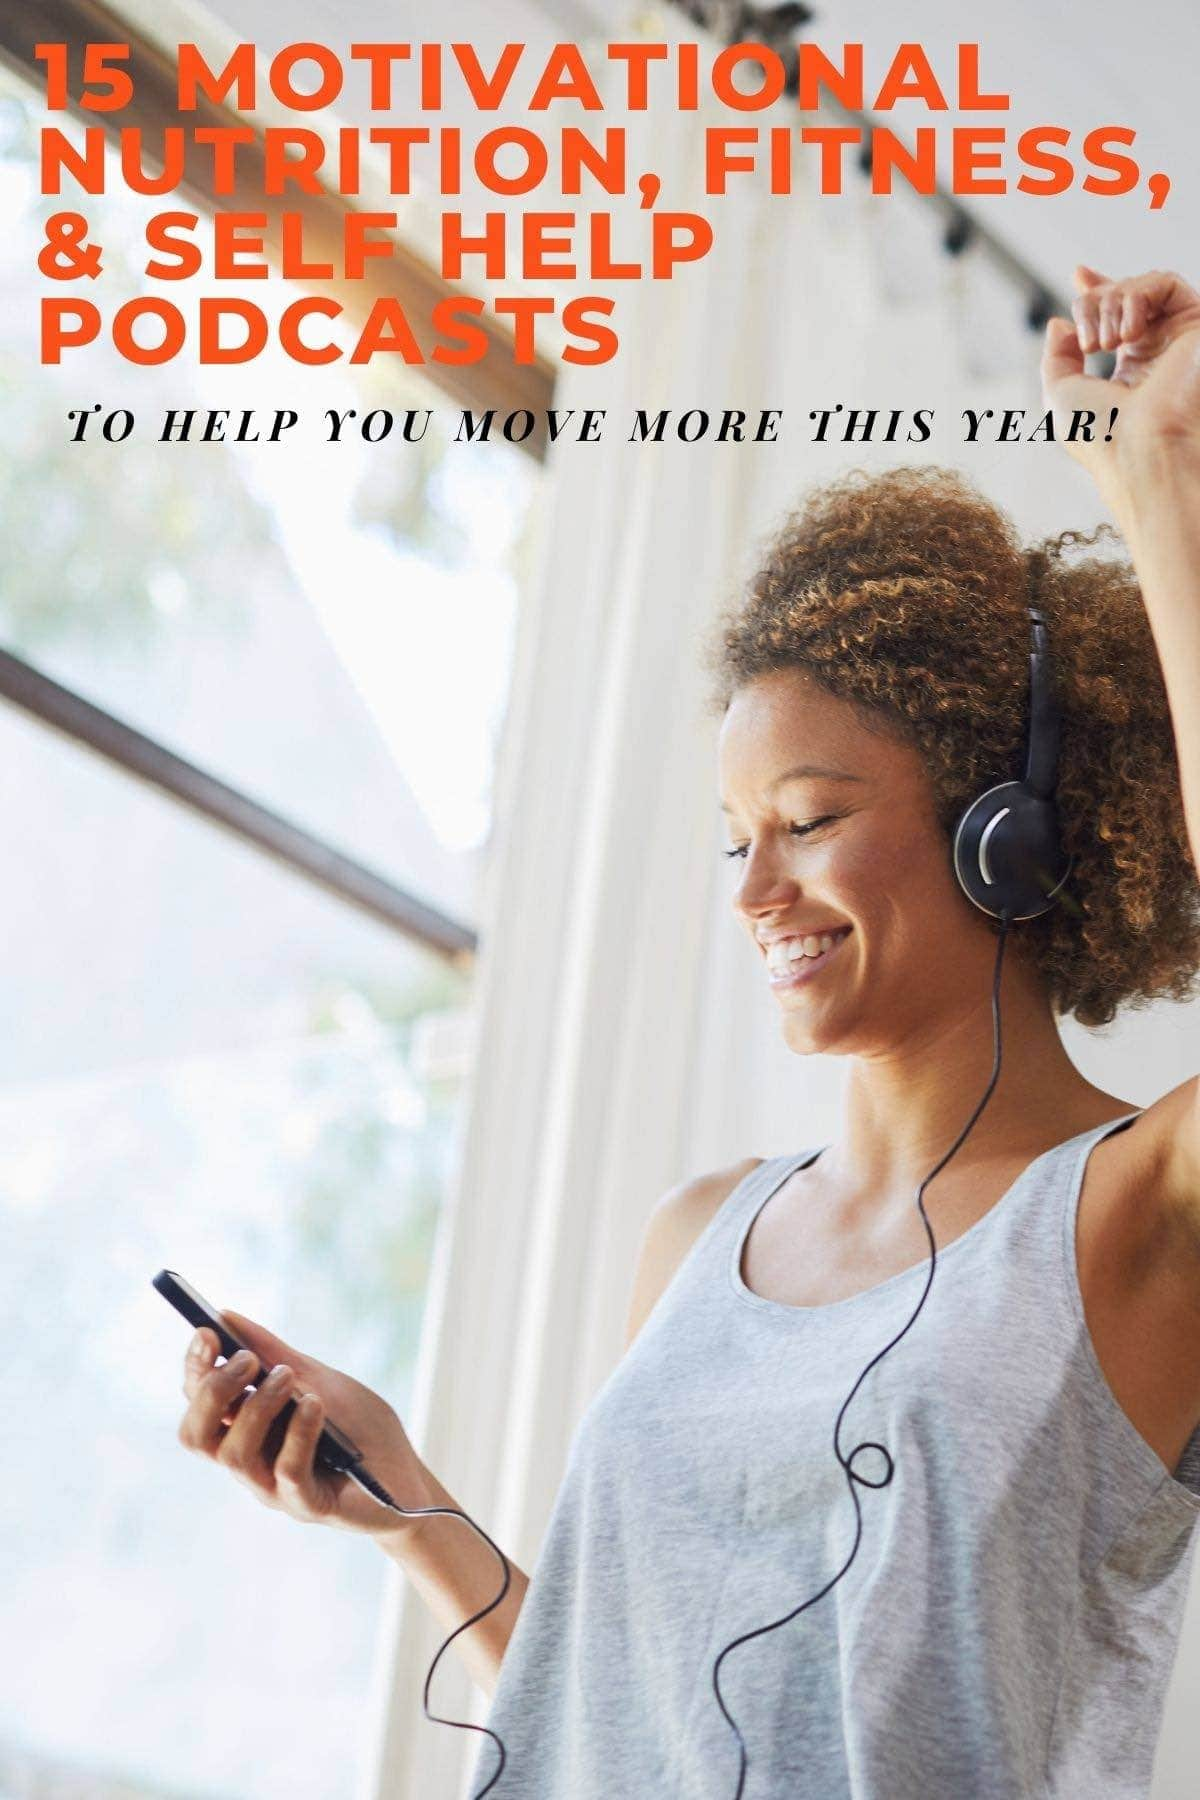 Nutrition, fitness, and self help podcasts graphic with a picture of a woman dancing and listening to a podcast with headphones on.